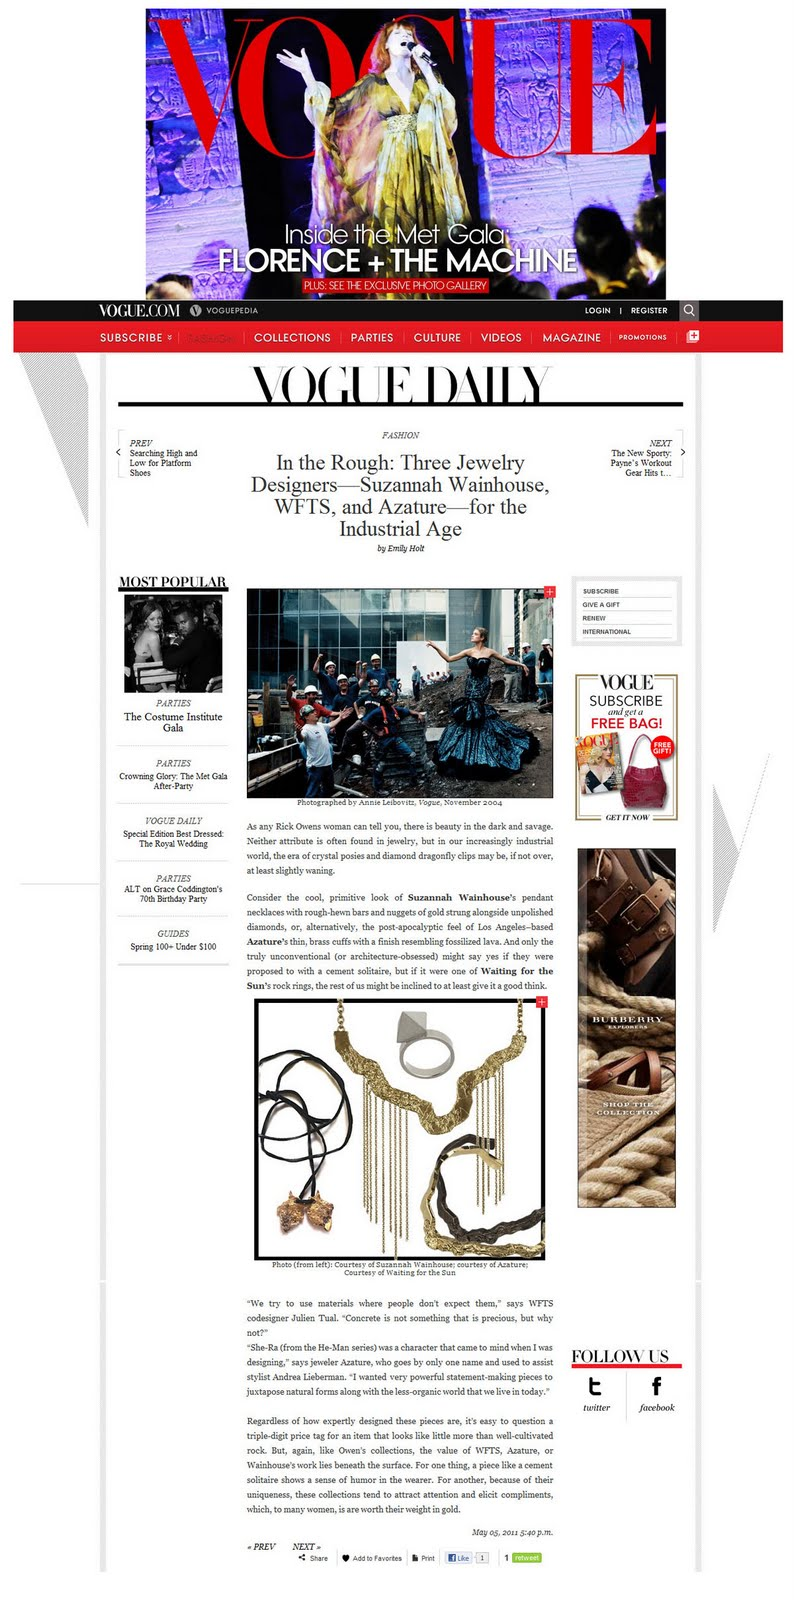 RAW information group VOGUE DAILY IN THE ROUGH 3 JEWELRY